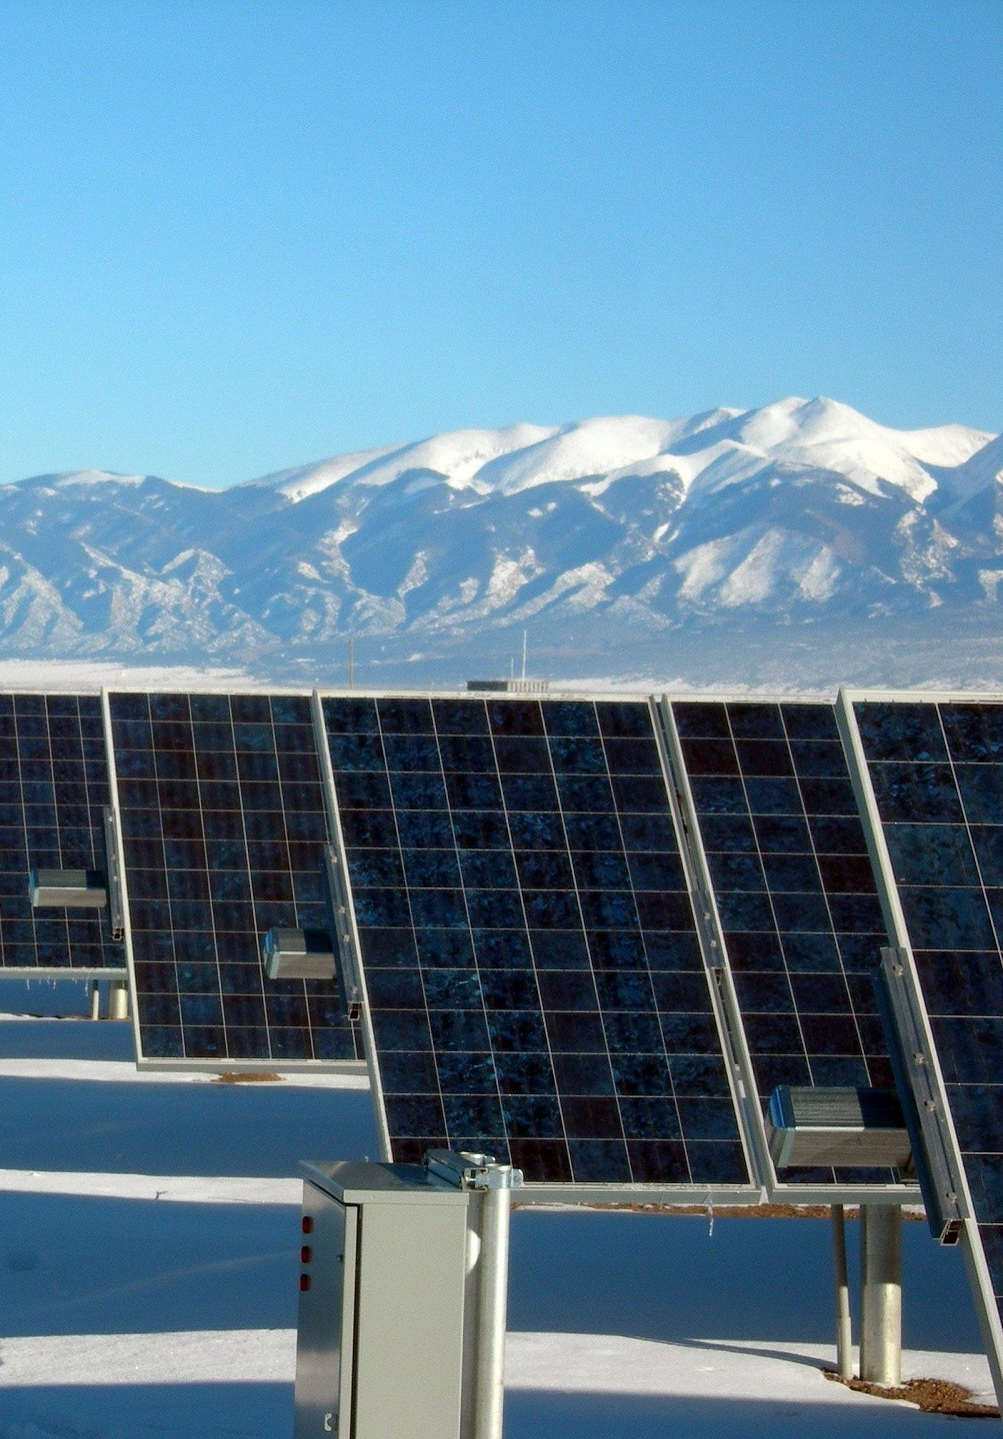 silver-and-black-solar-panels-on-snow-covered-ground-159160-2